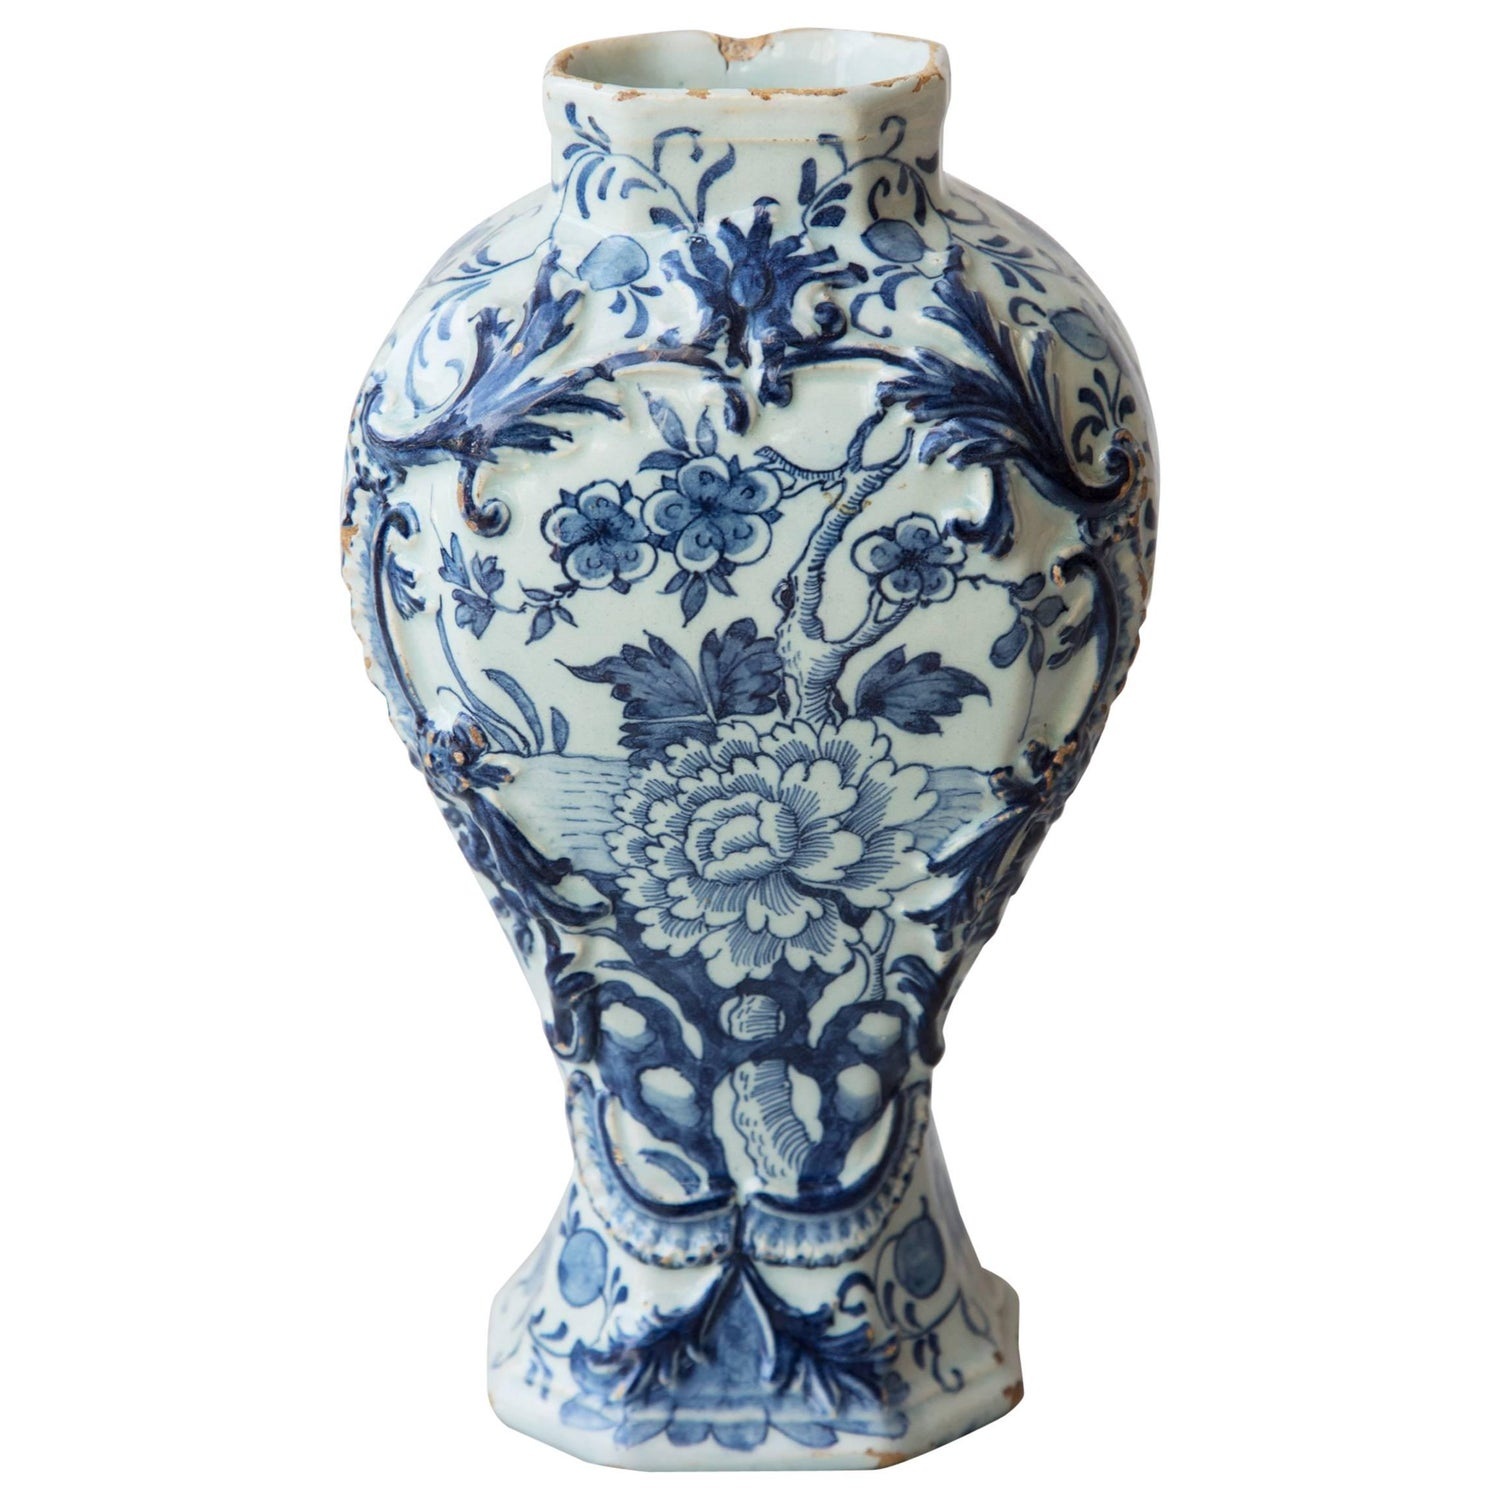 18th century octagonal baluster delft vase for sale at 1stdibs reviewsmspy